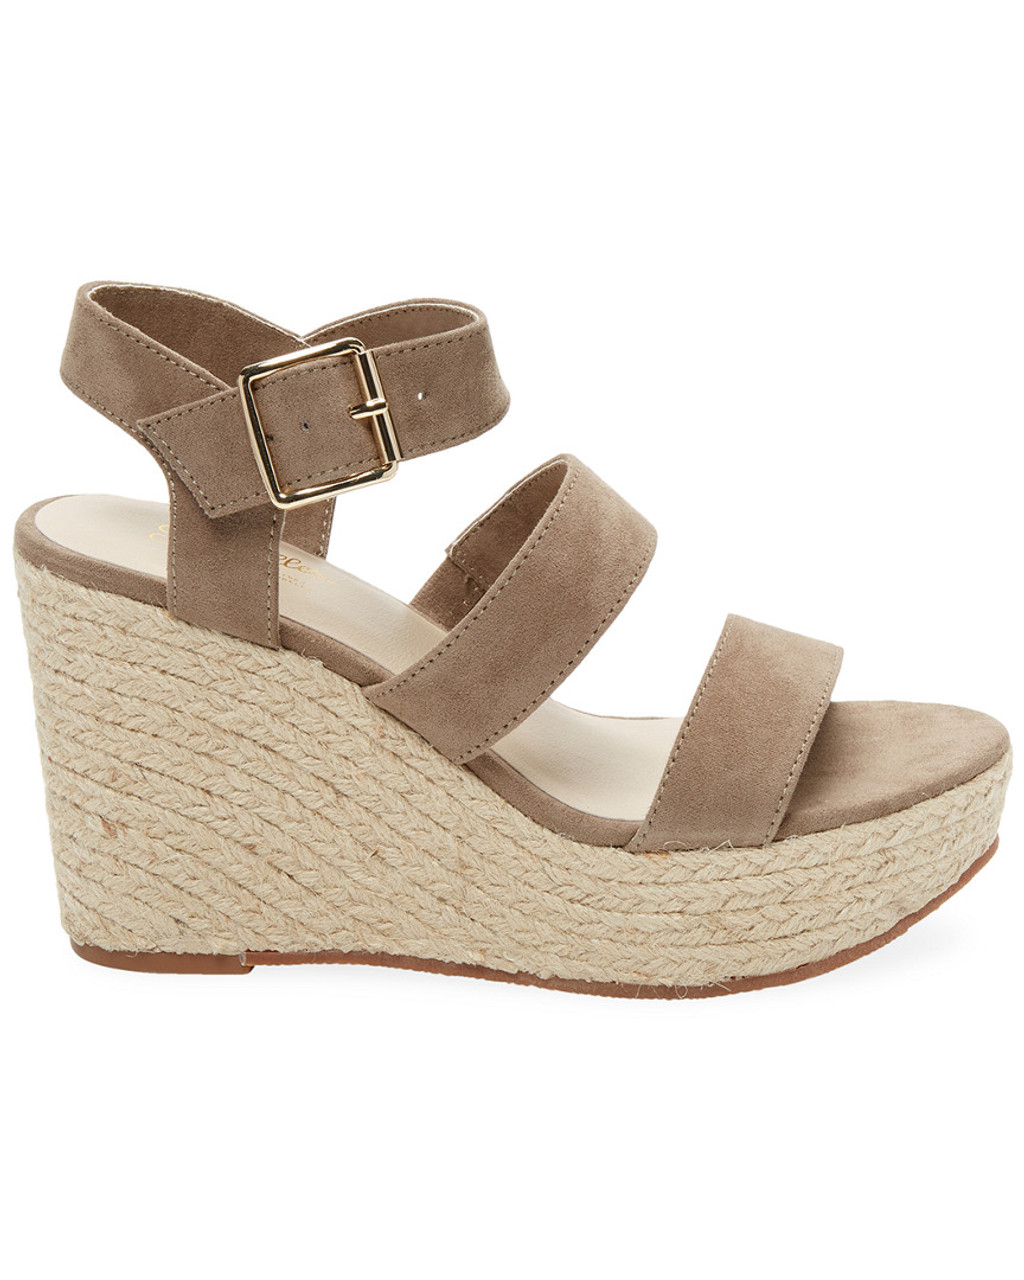 0391792098 Seychelles Suede Banded Wedge Sandal~1311801551 - Carsons